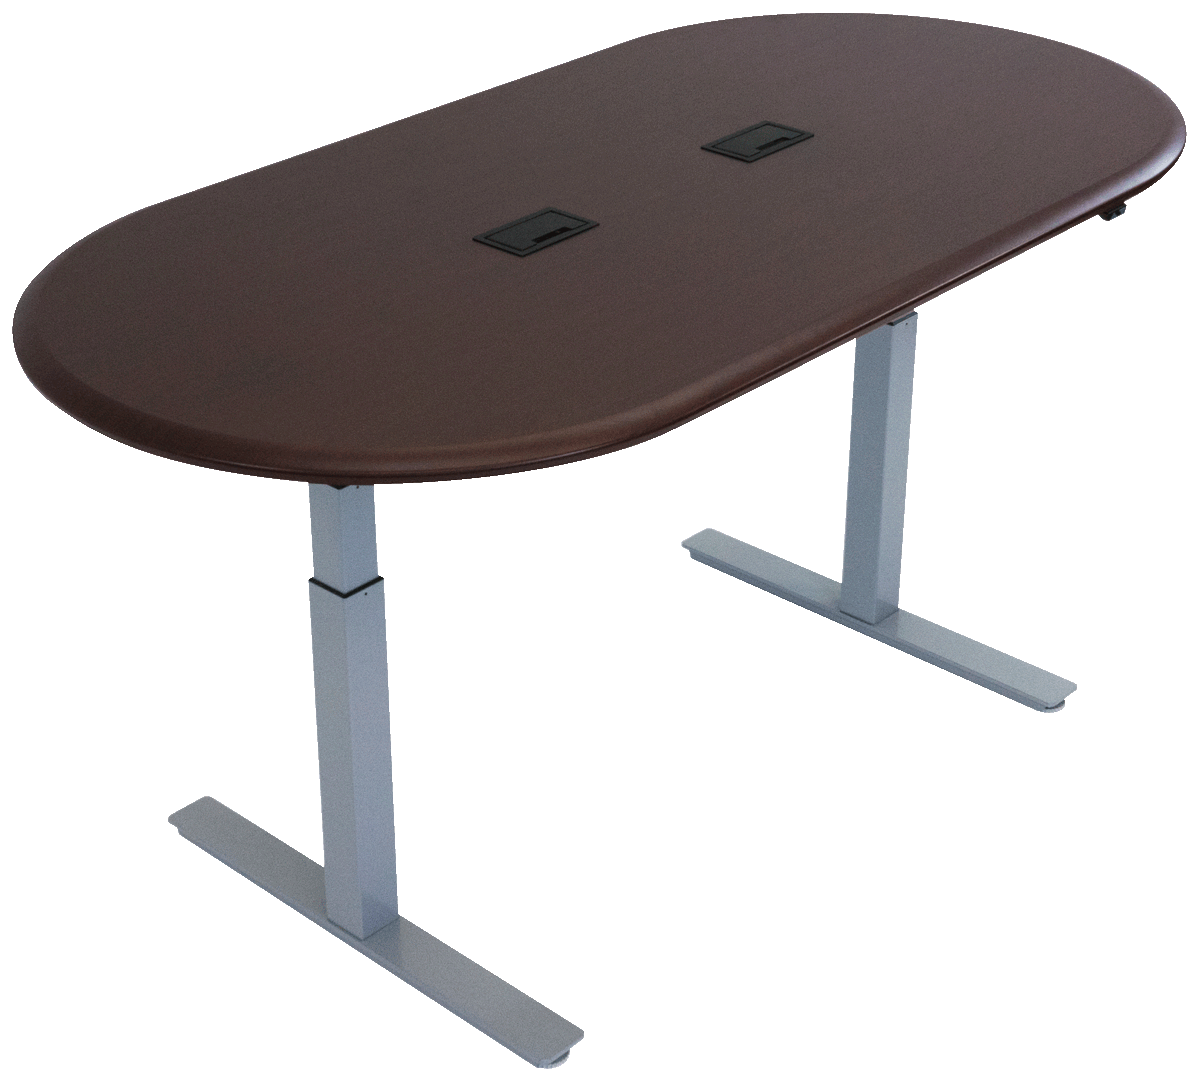 iMovR Synapse Adjustable-Height Conference Table - Racetrack